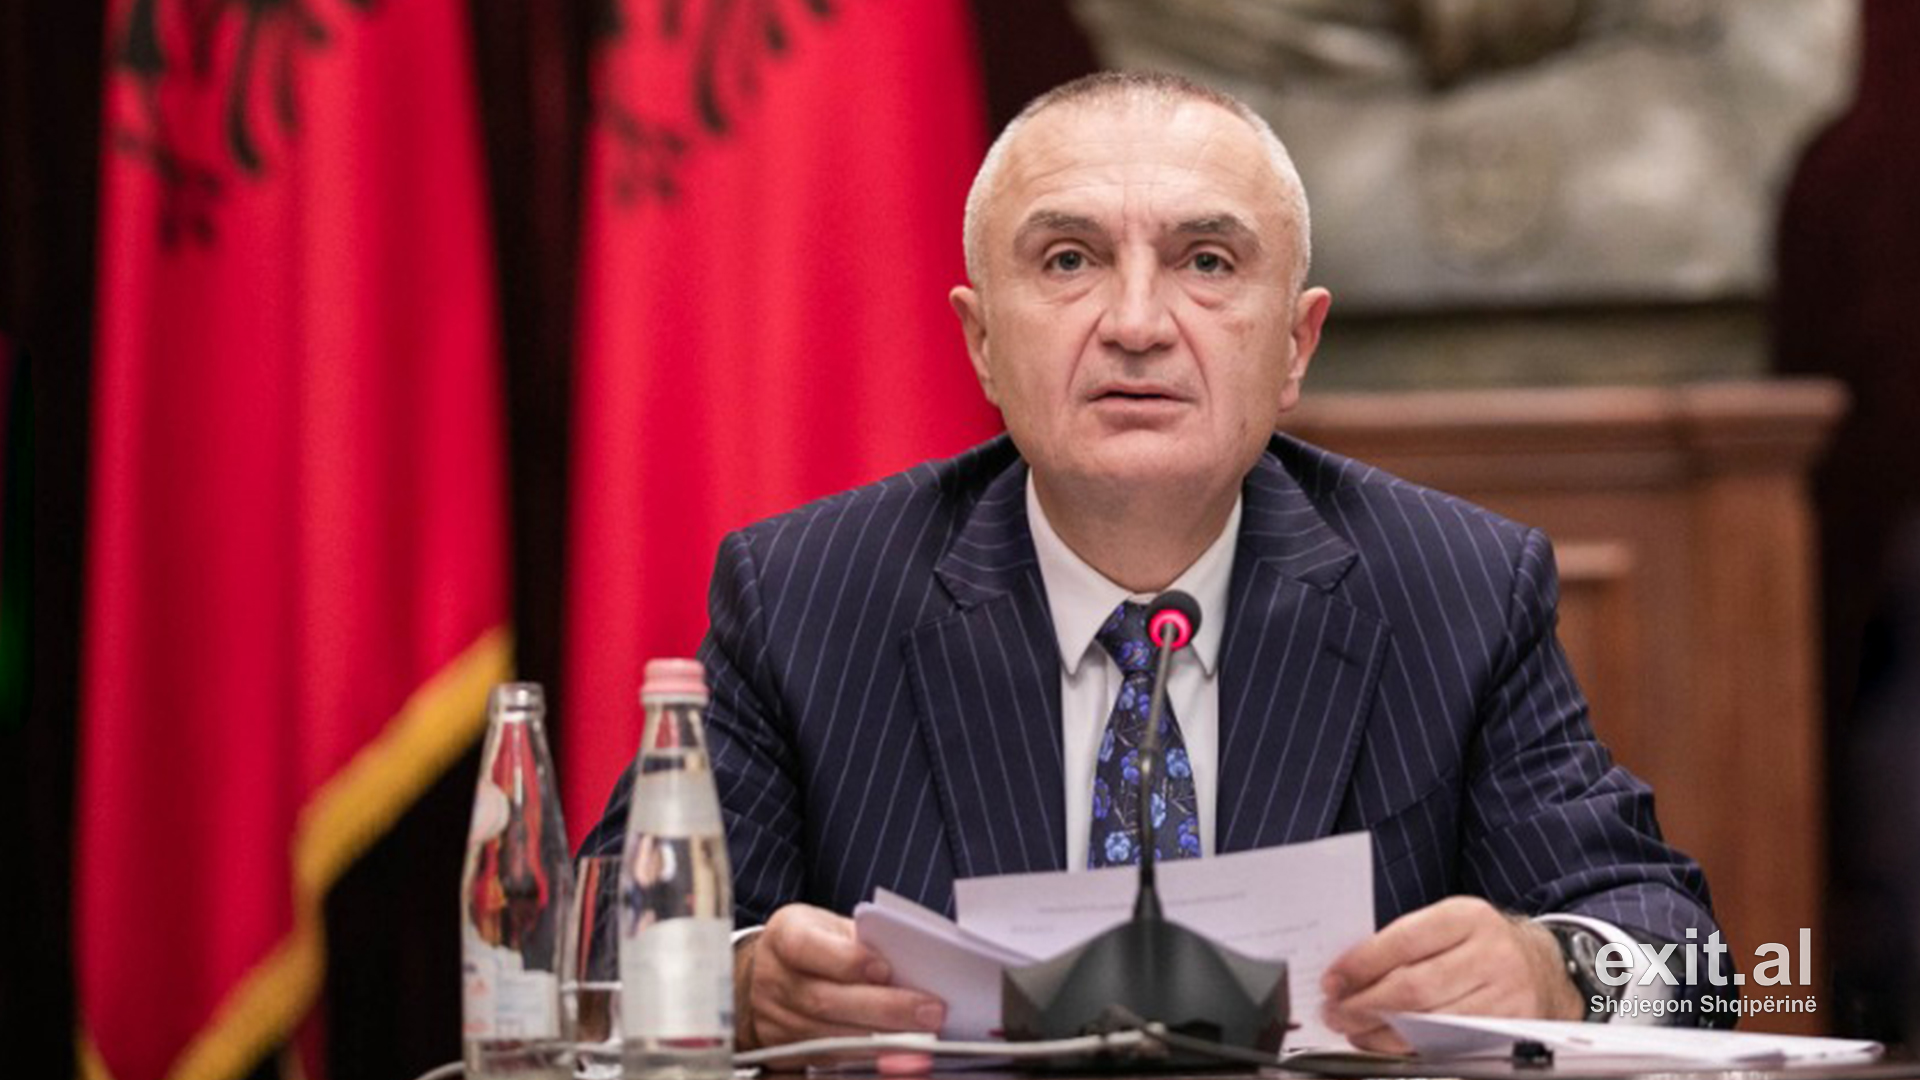 Albanian President Demands End of High Court Judge Dvorani's Mandate